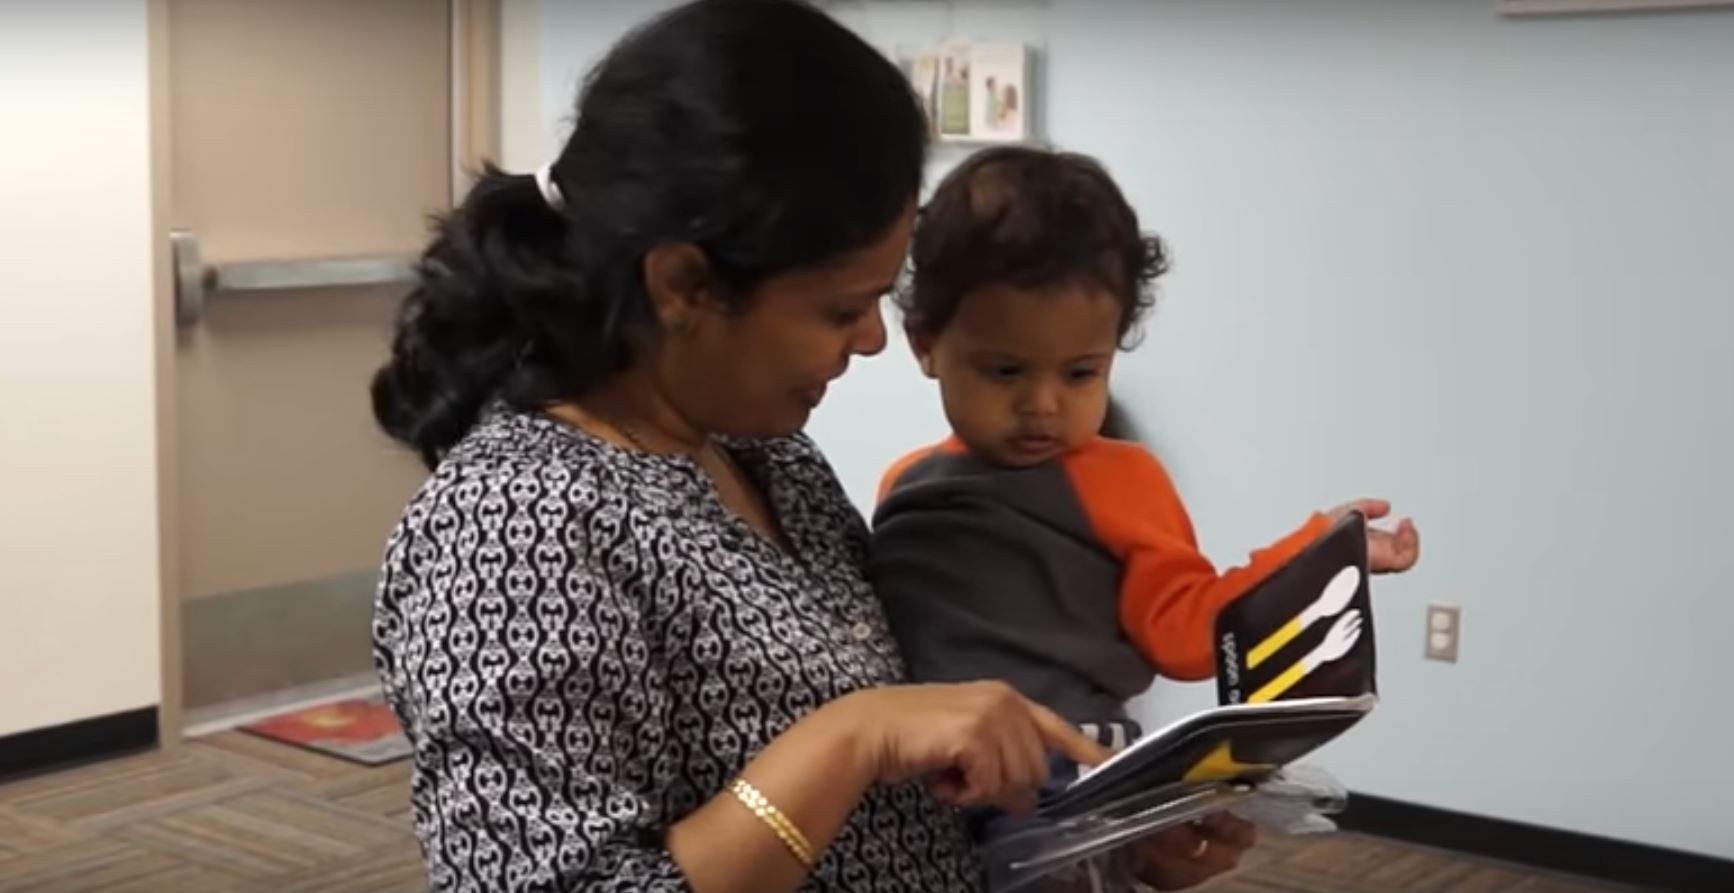 A Parent Reads With Her Young Child To Help Him Develop The Language And Literacy Skills He Will Need To Succeed In School. Photo Courtesy Southwest Human Development